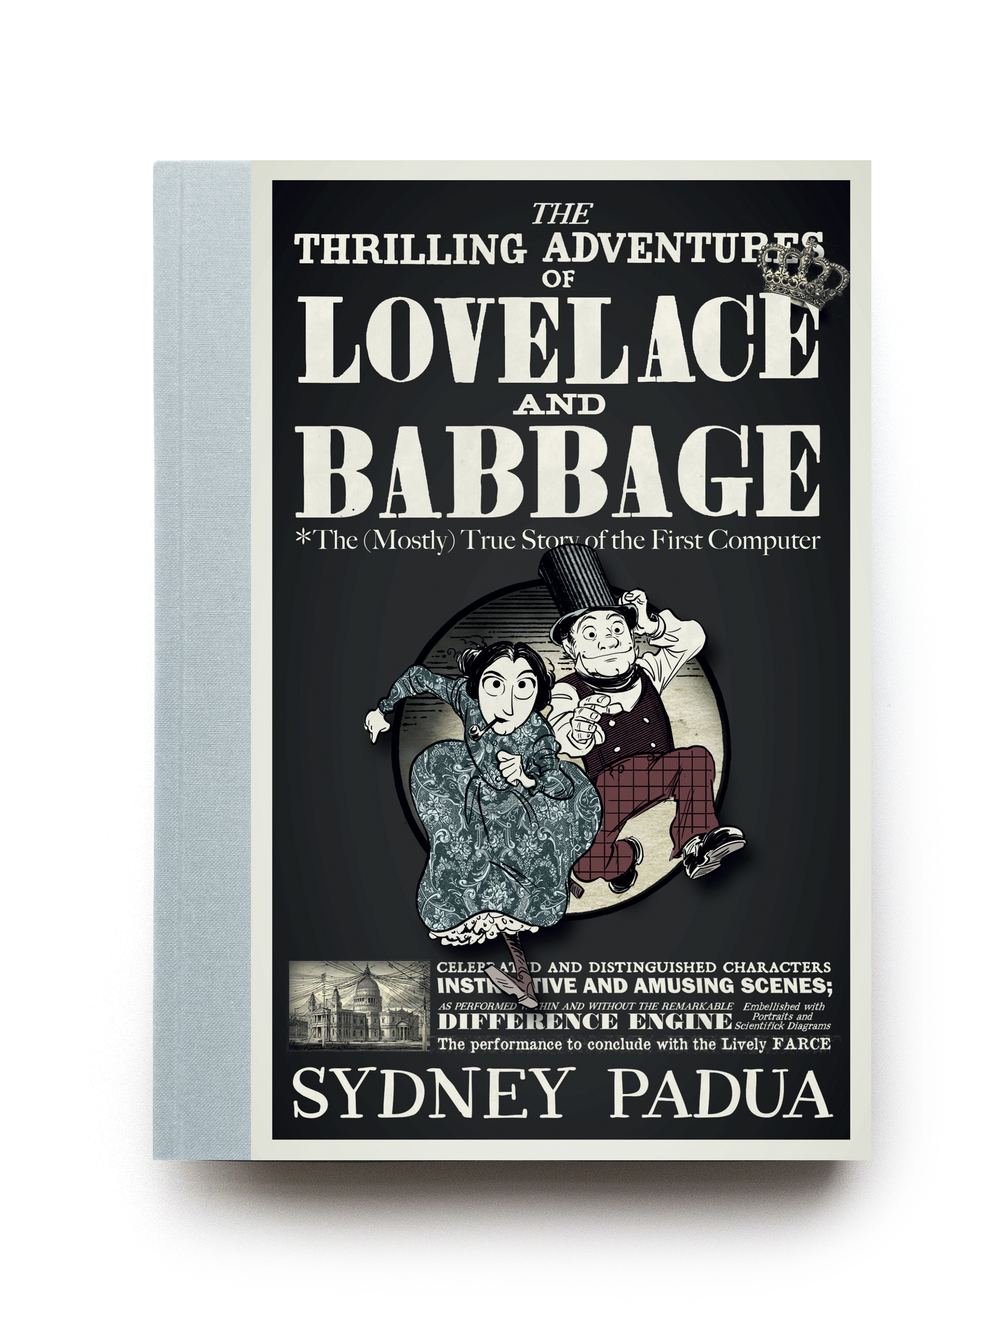 Lovelace & Babbage by Sydney Padua - Design: Jim Stoddart